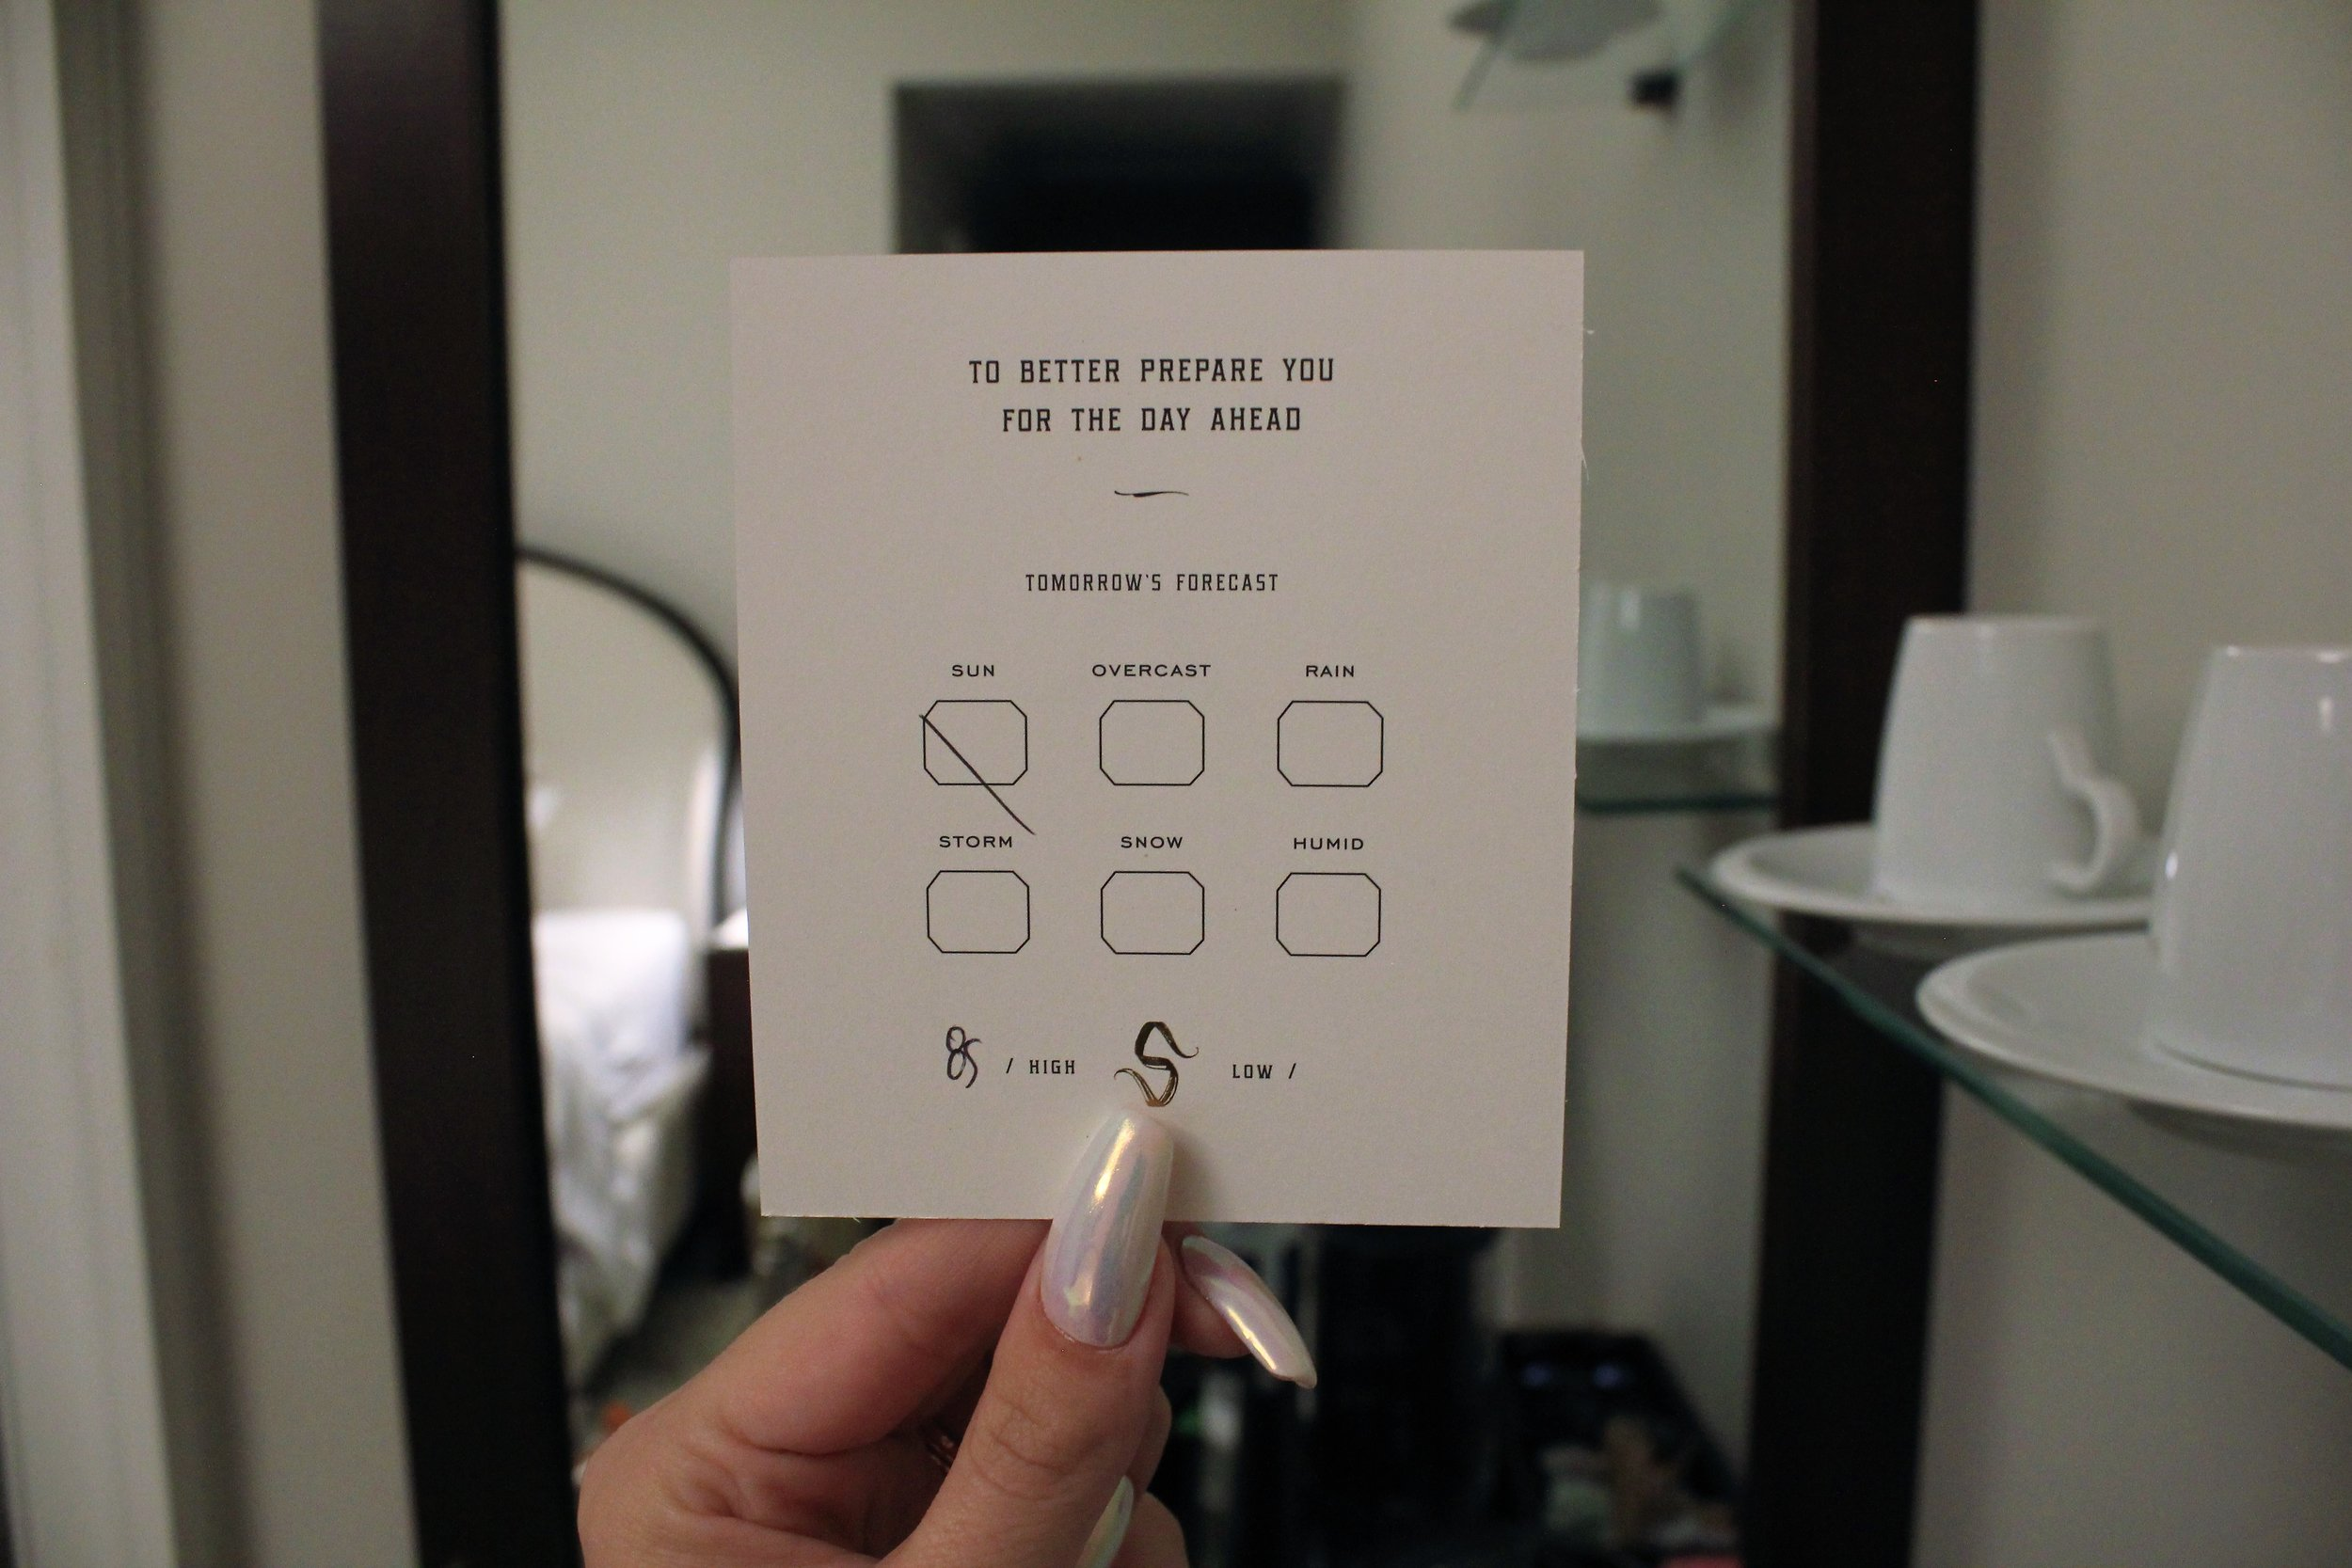 Daily Report Card at The Spectator Hotel